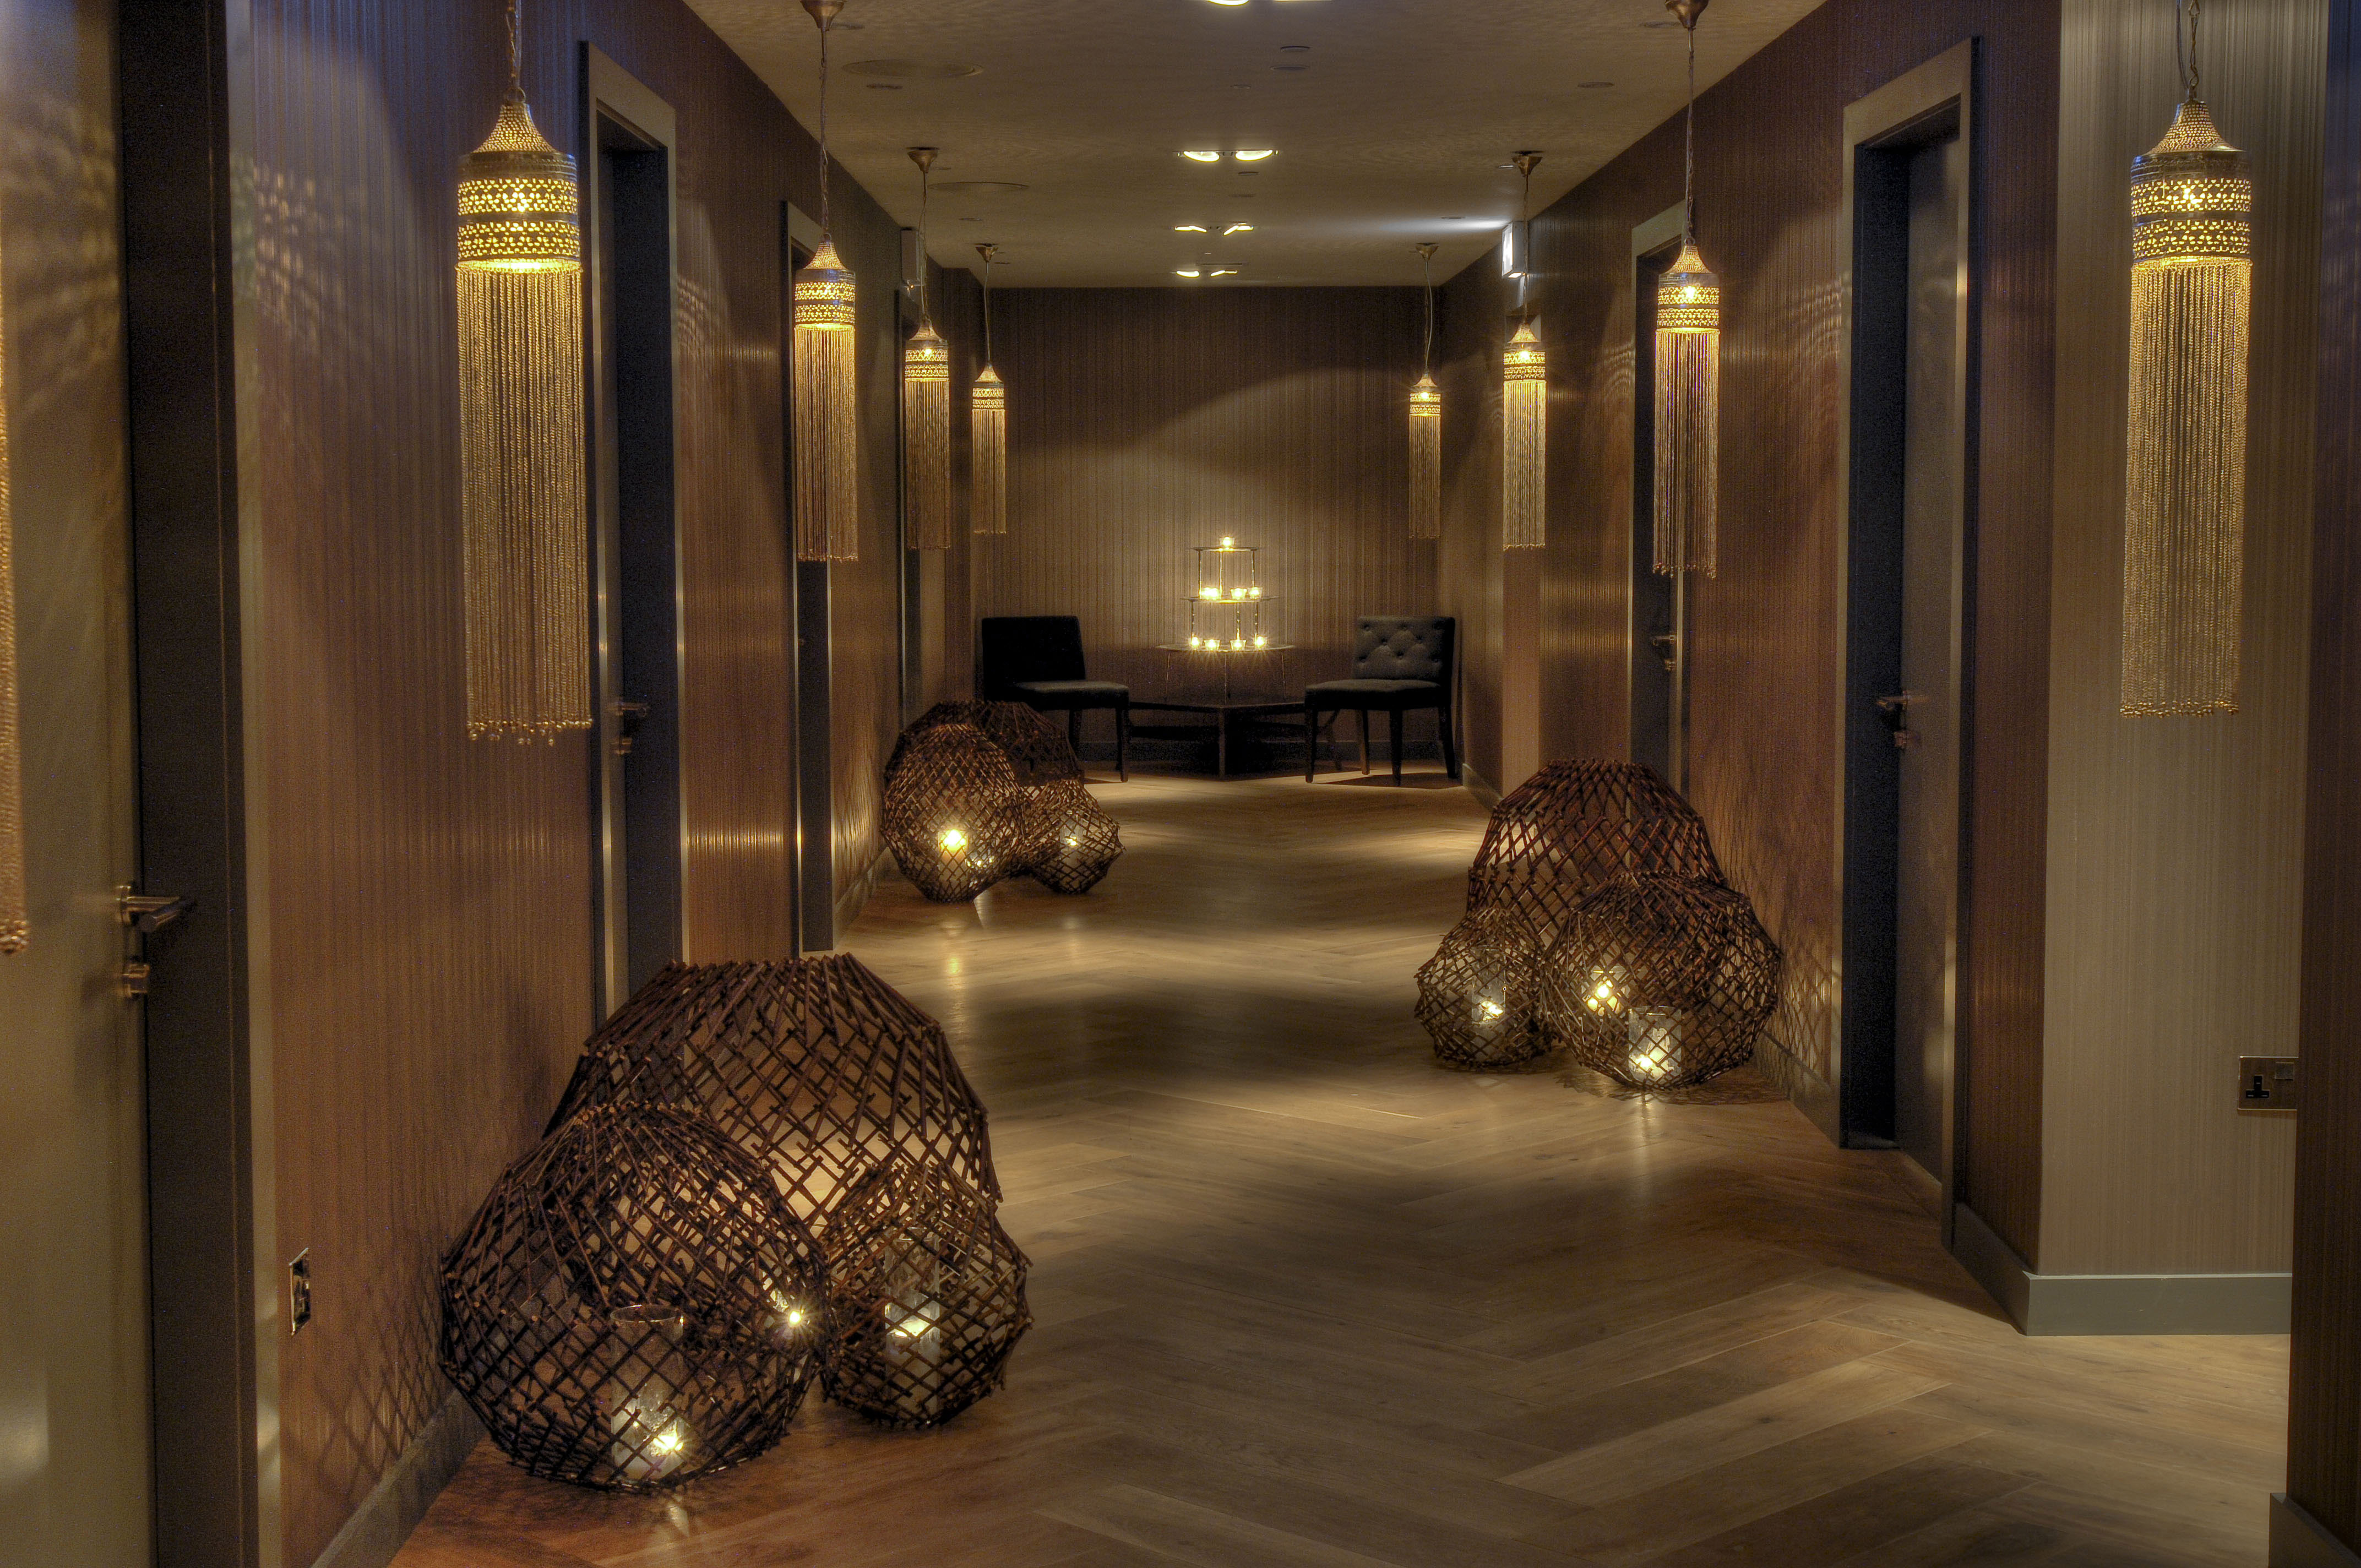 Blythswood Spa - treatment room corridor